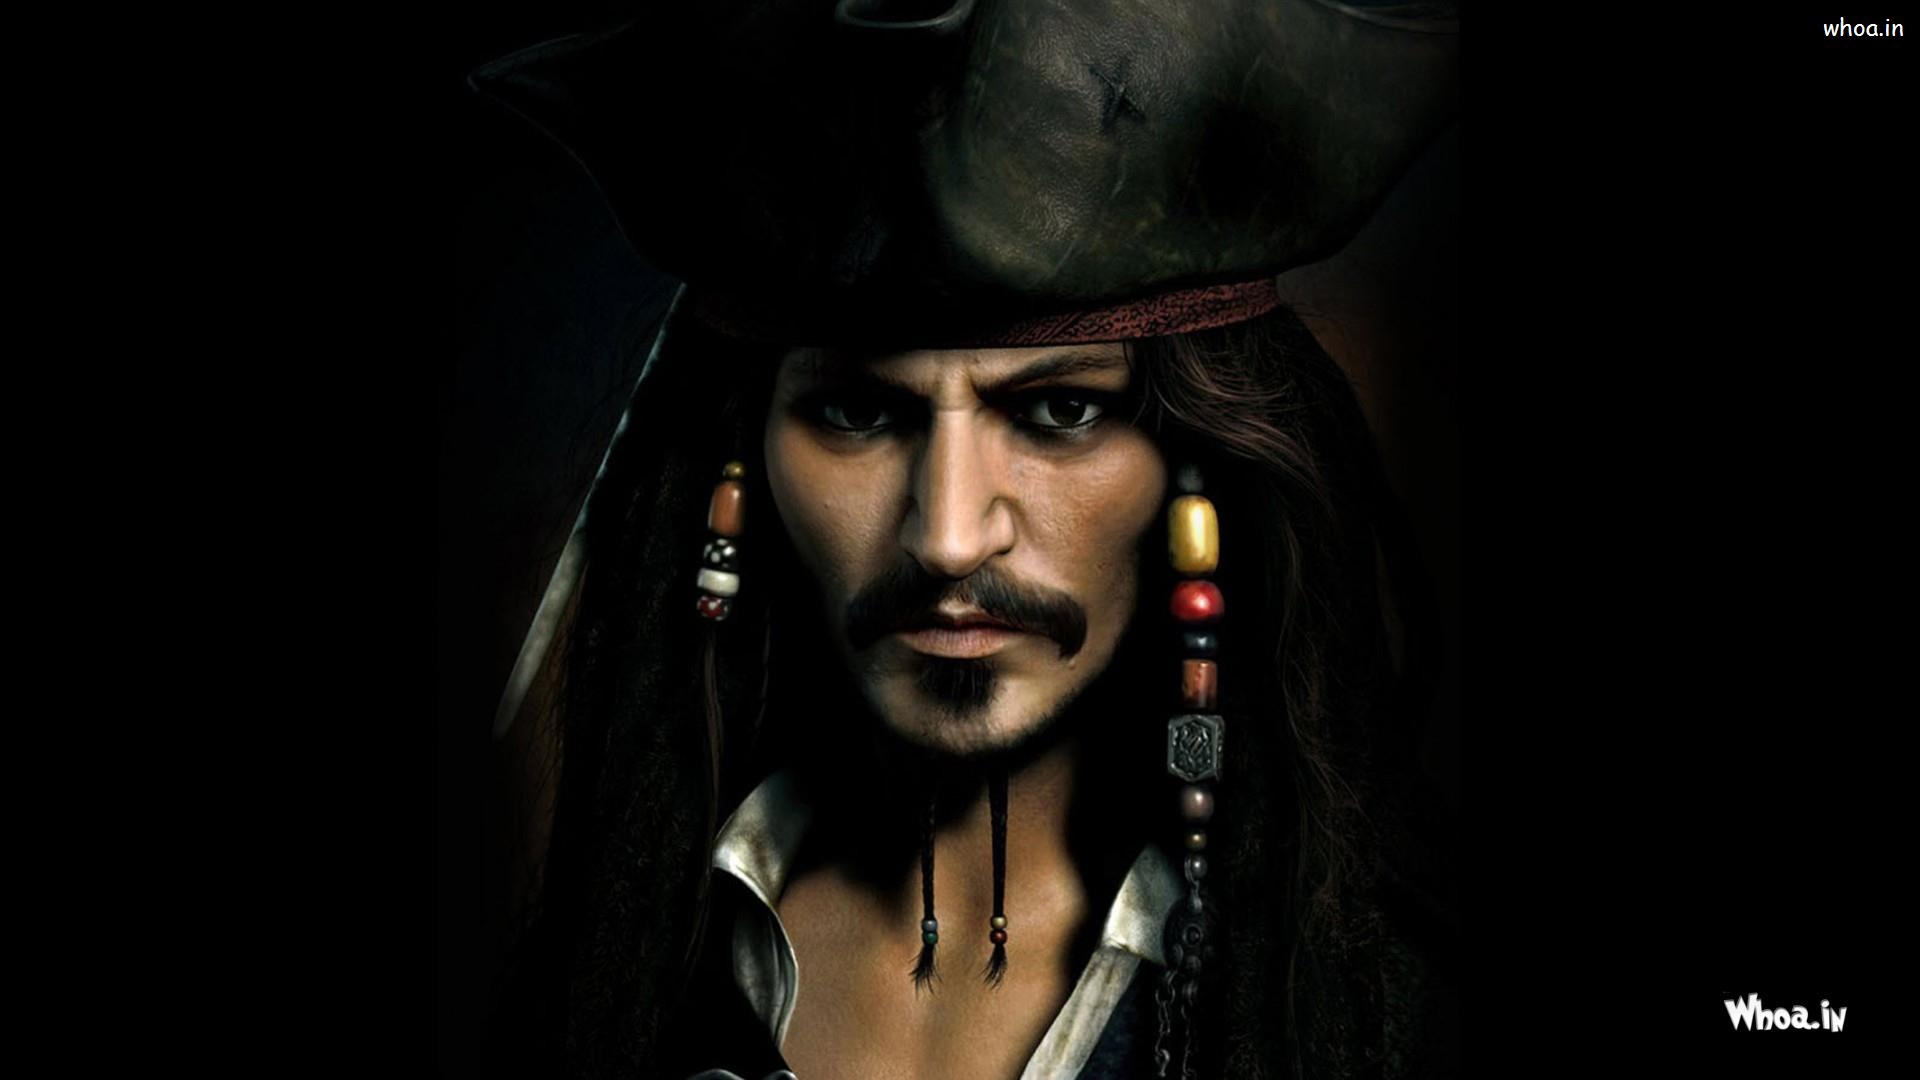 Jack Sparrow As Johnny Depp In Pirate Of Caribbean Hd Wallpaper